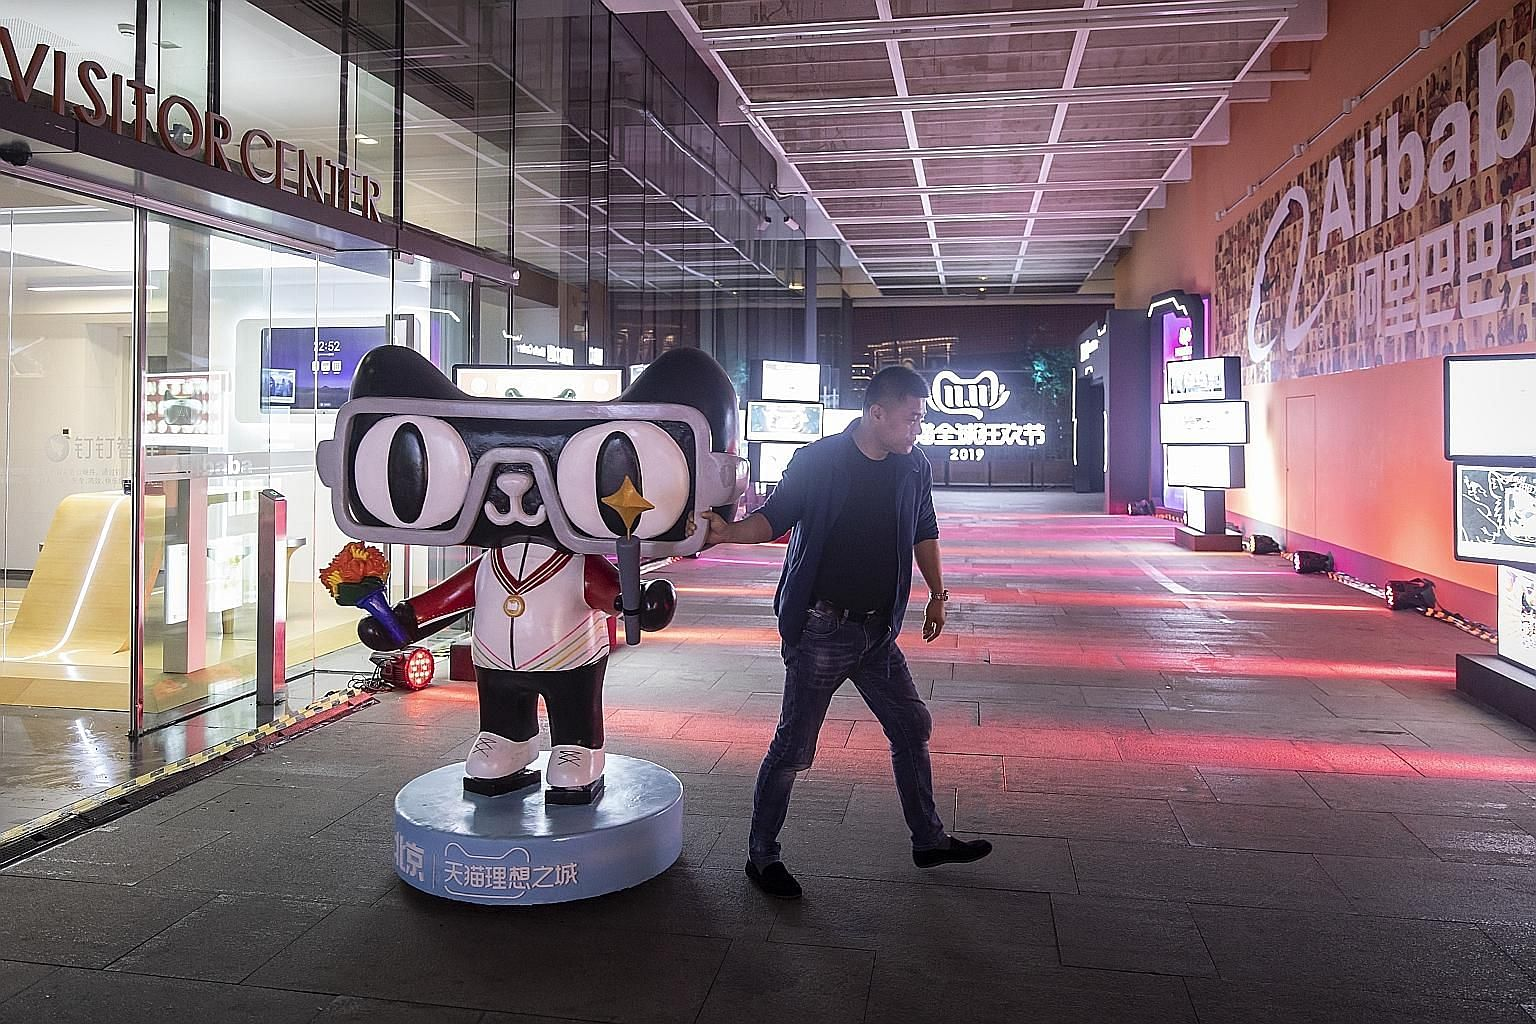 An employee moving a Tmall.com mascot at Alibaba's headquarters in Hangzhou. Alibaba's planned offering size for its initial public offering in Hong Kong has not changed as a result of the protests in the city, Mr Michael Yao, the company's head of c